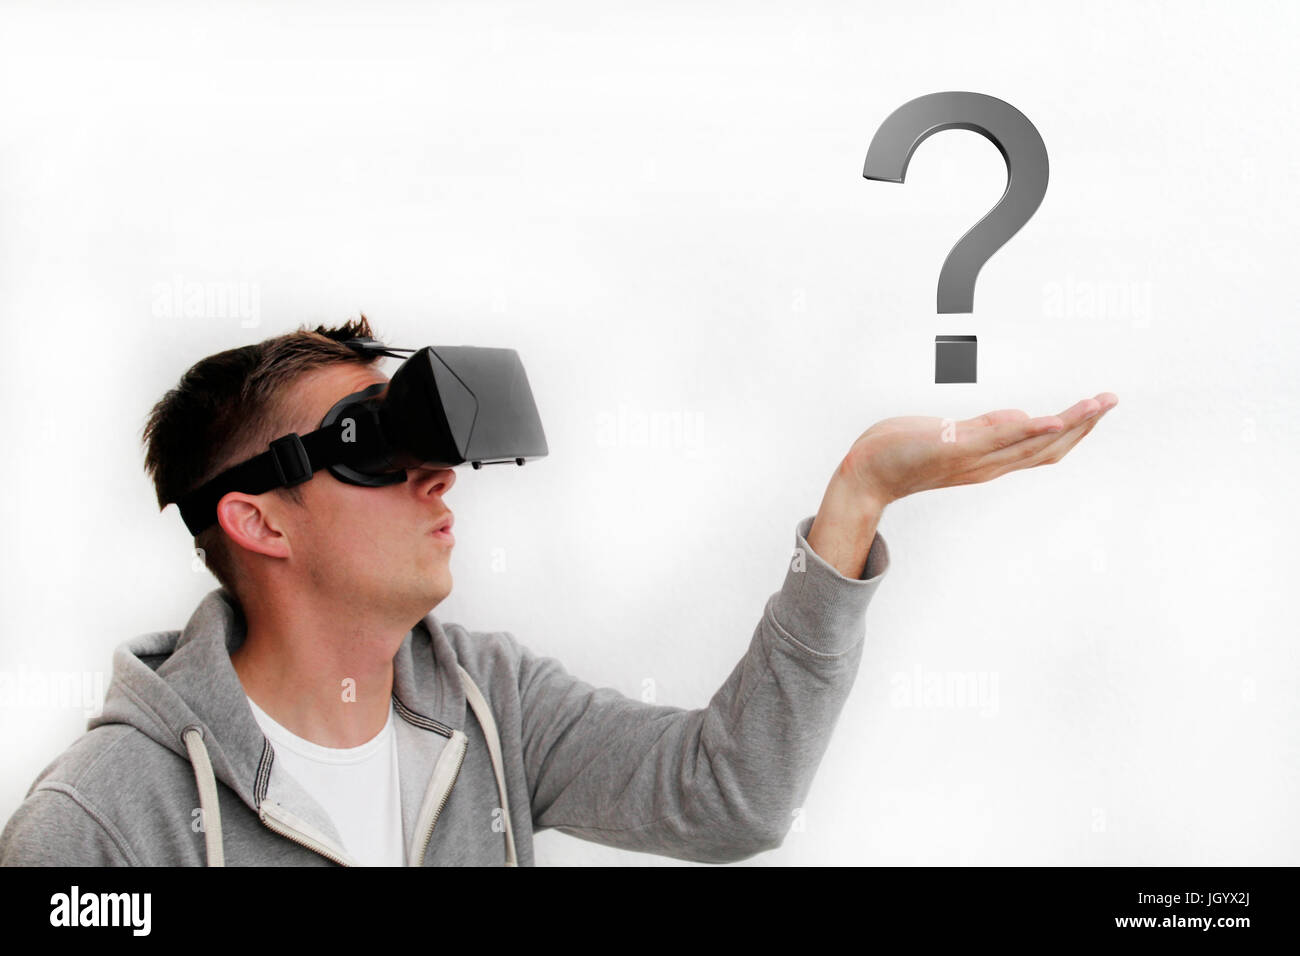 Virtual Reality and question mark - Stock Image